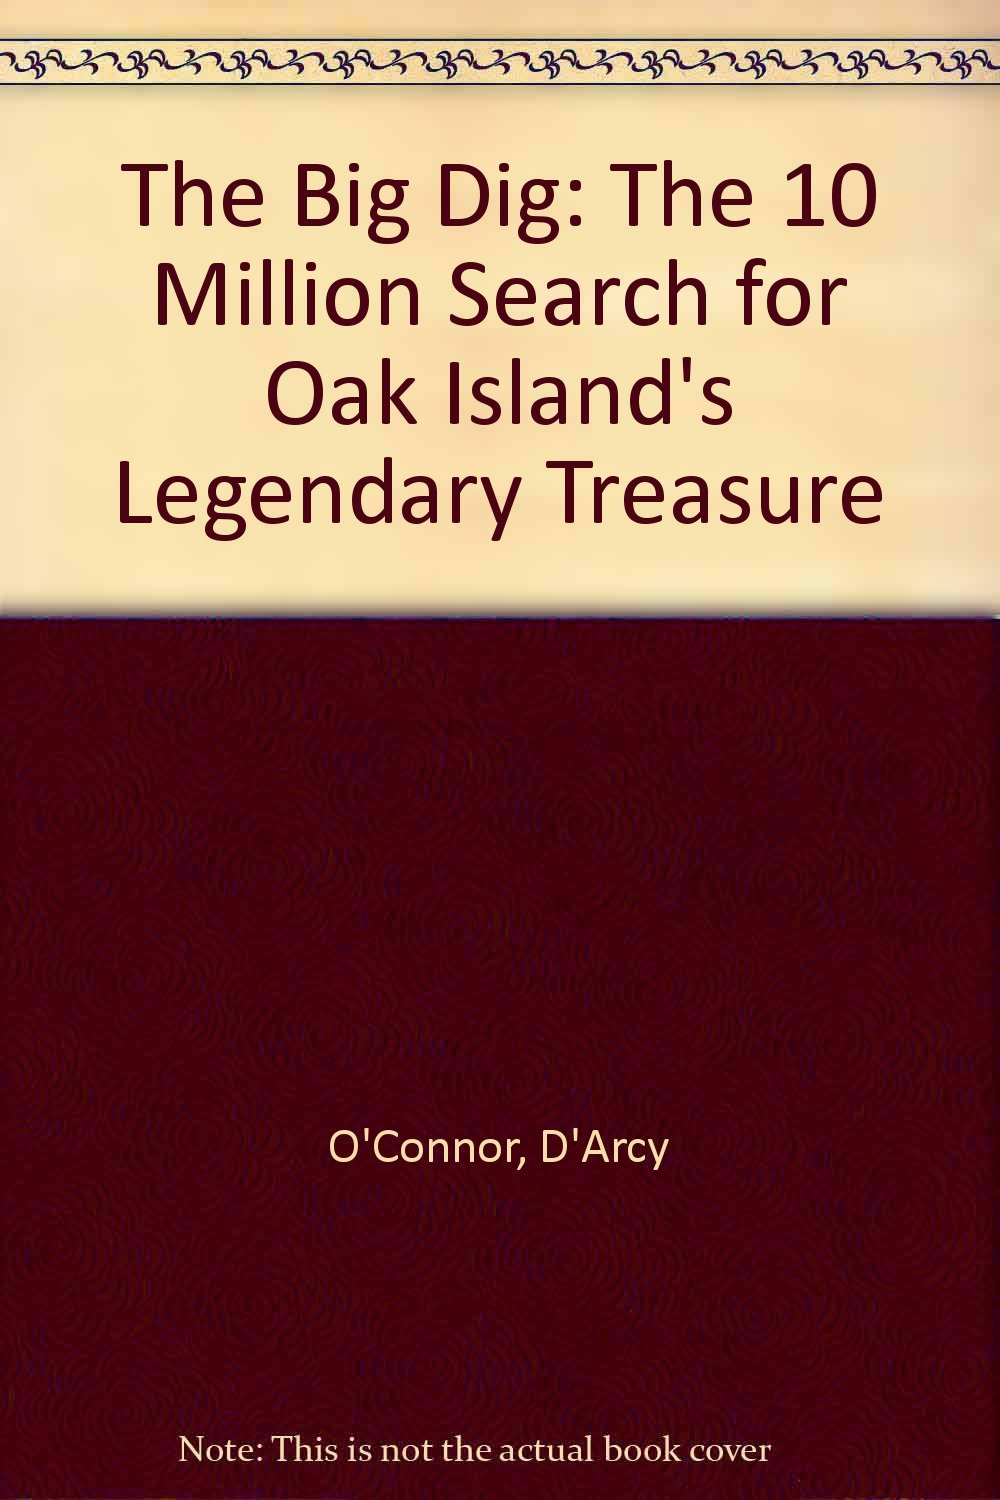 The Big Dig: The $10 Million Search for Oak Island's Legendary Treasure